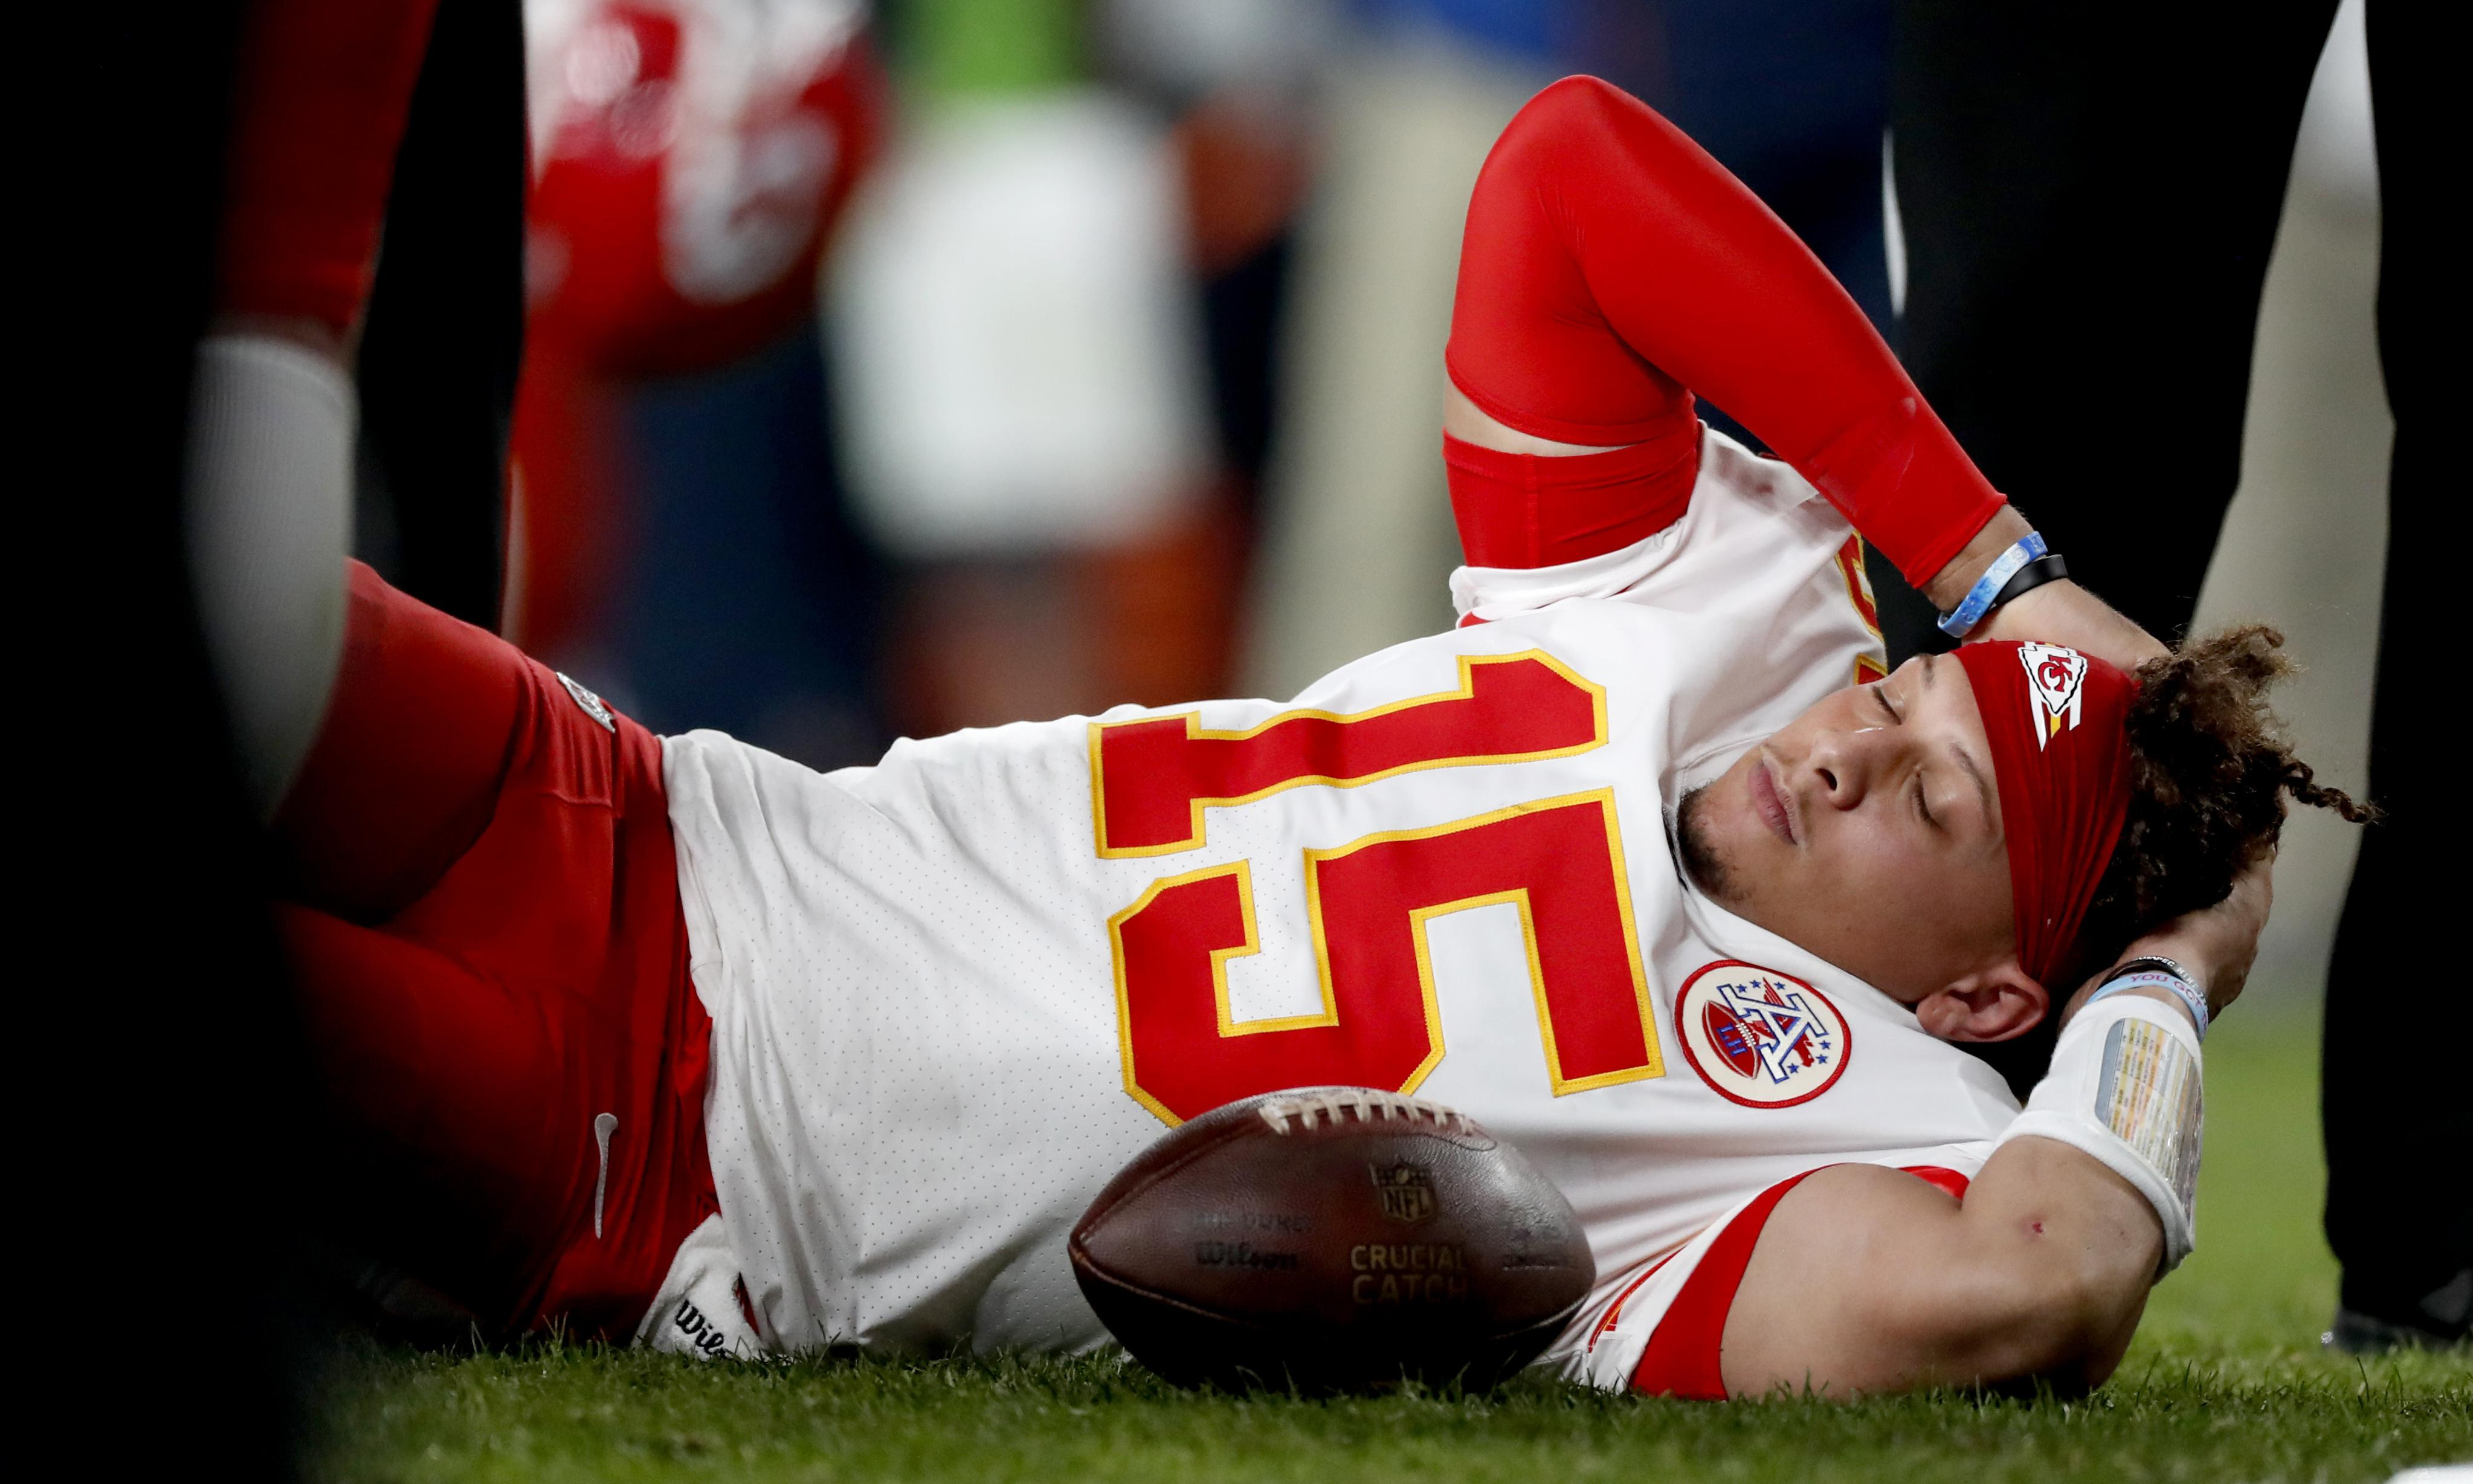 Patrick Mahomes expected to miss 'about a month' after knee injury